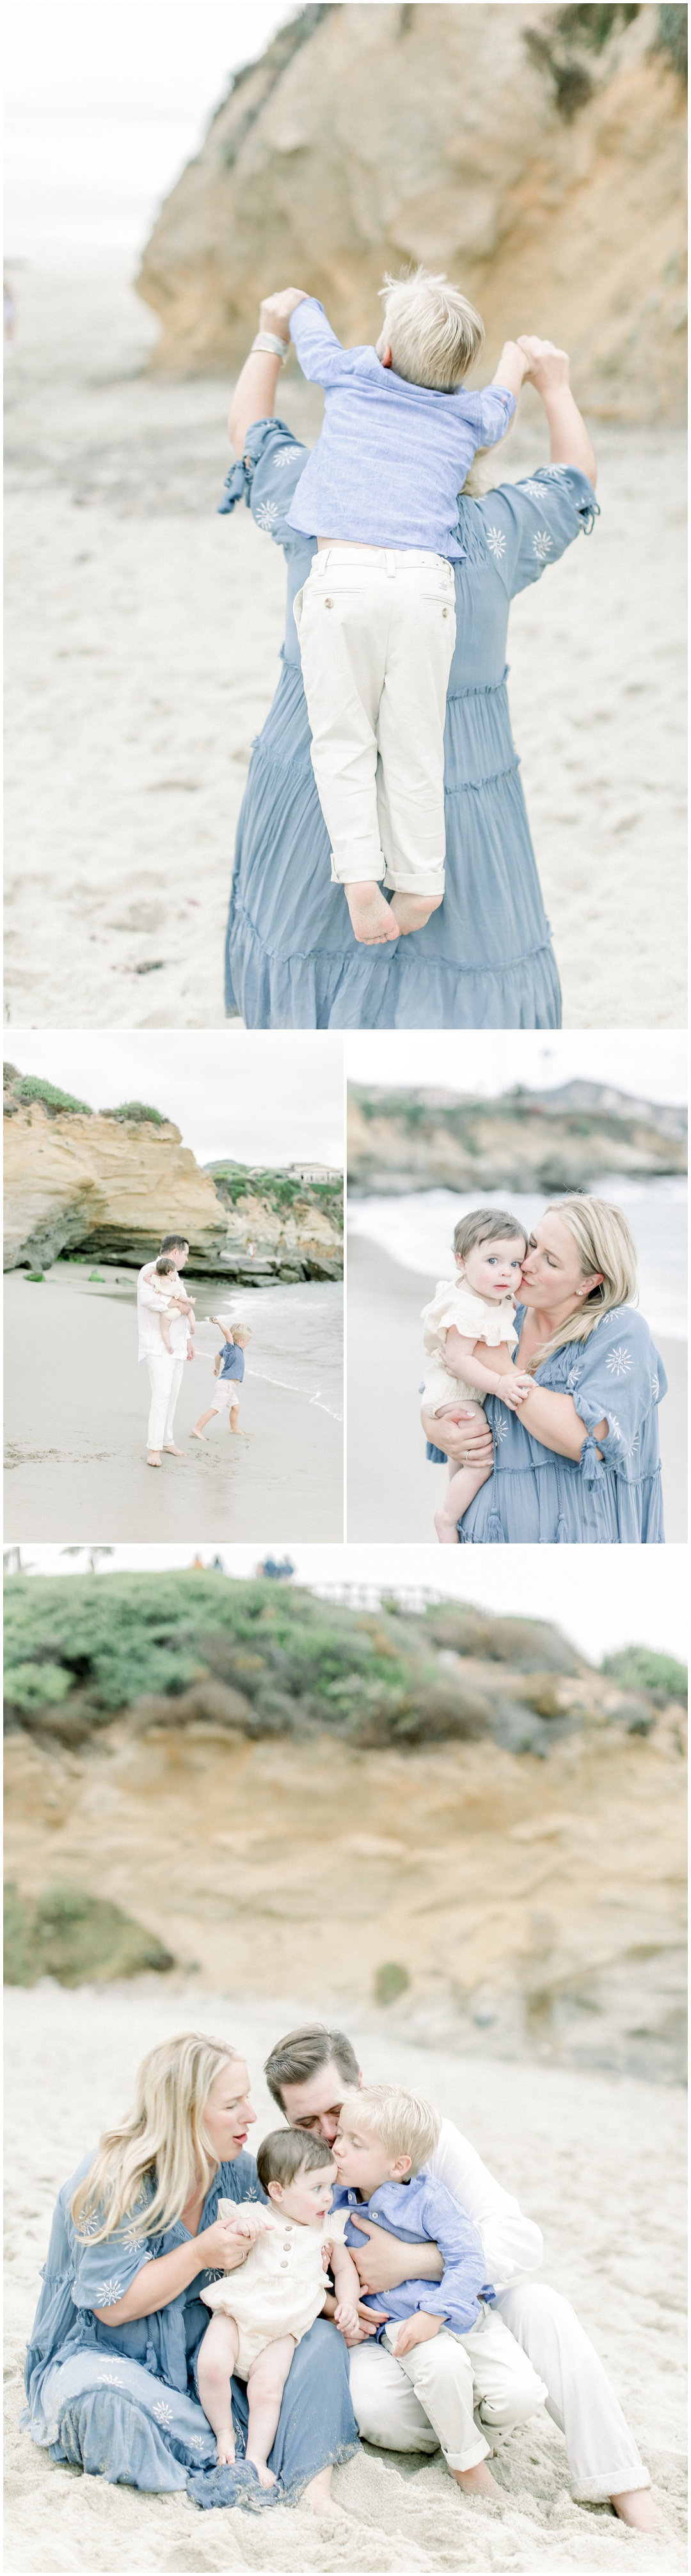 Newport+Beach+Newborn+Photographer+Orange+County+Family+Photographer+Cori+Kleckner+Photography+The+McClure+Family+Gracie+McClure_4384.jpg